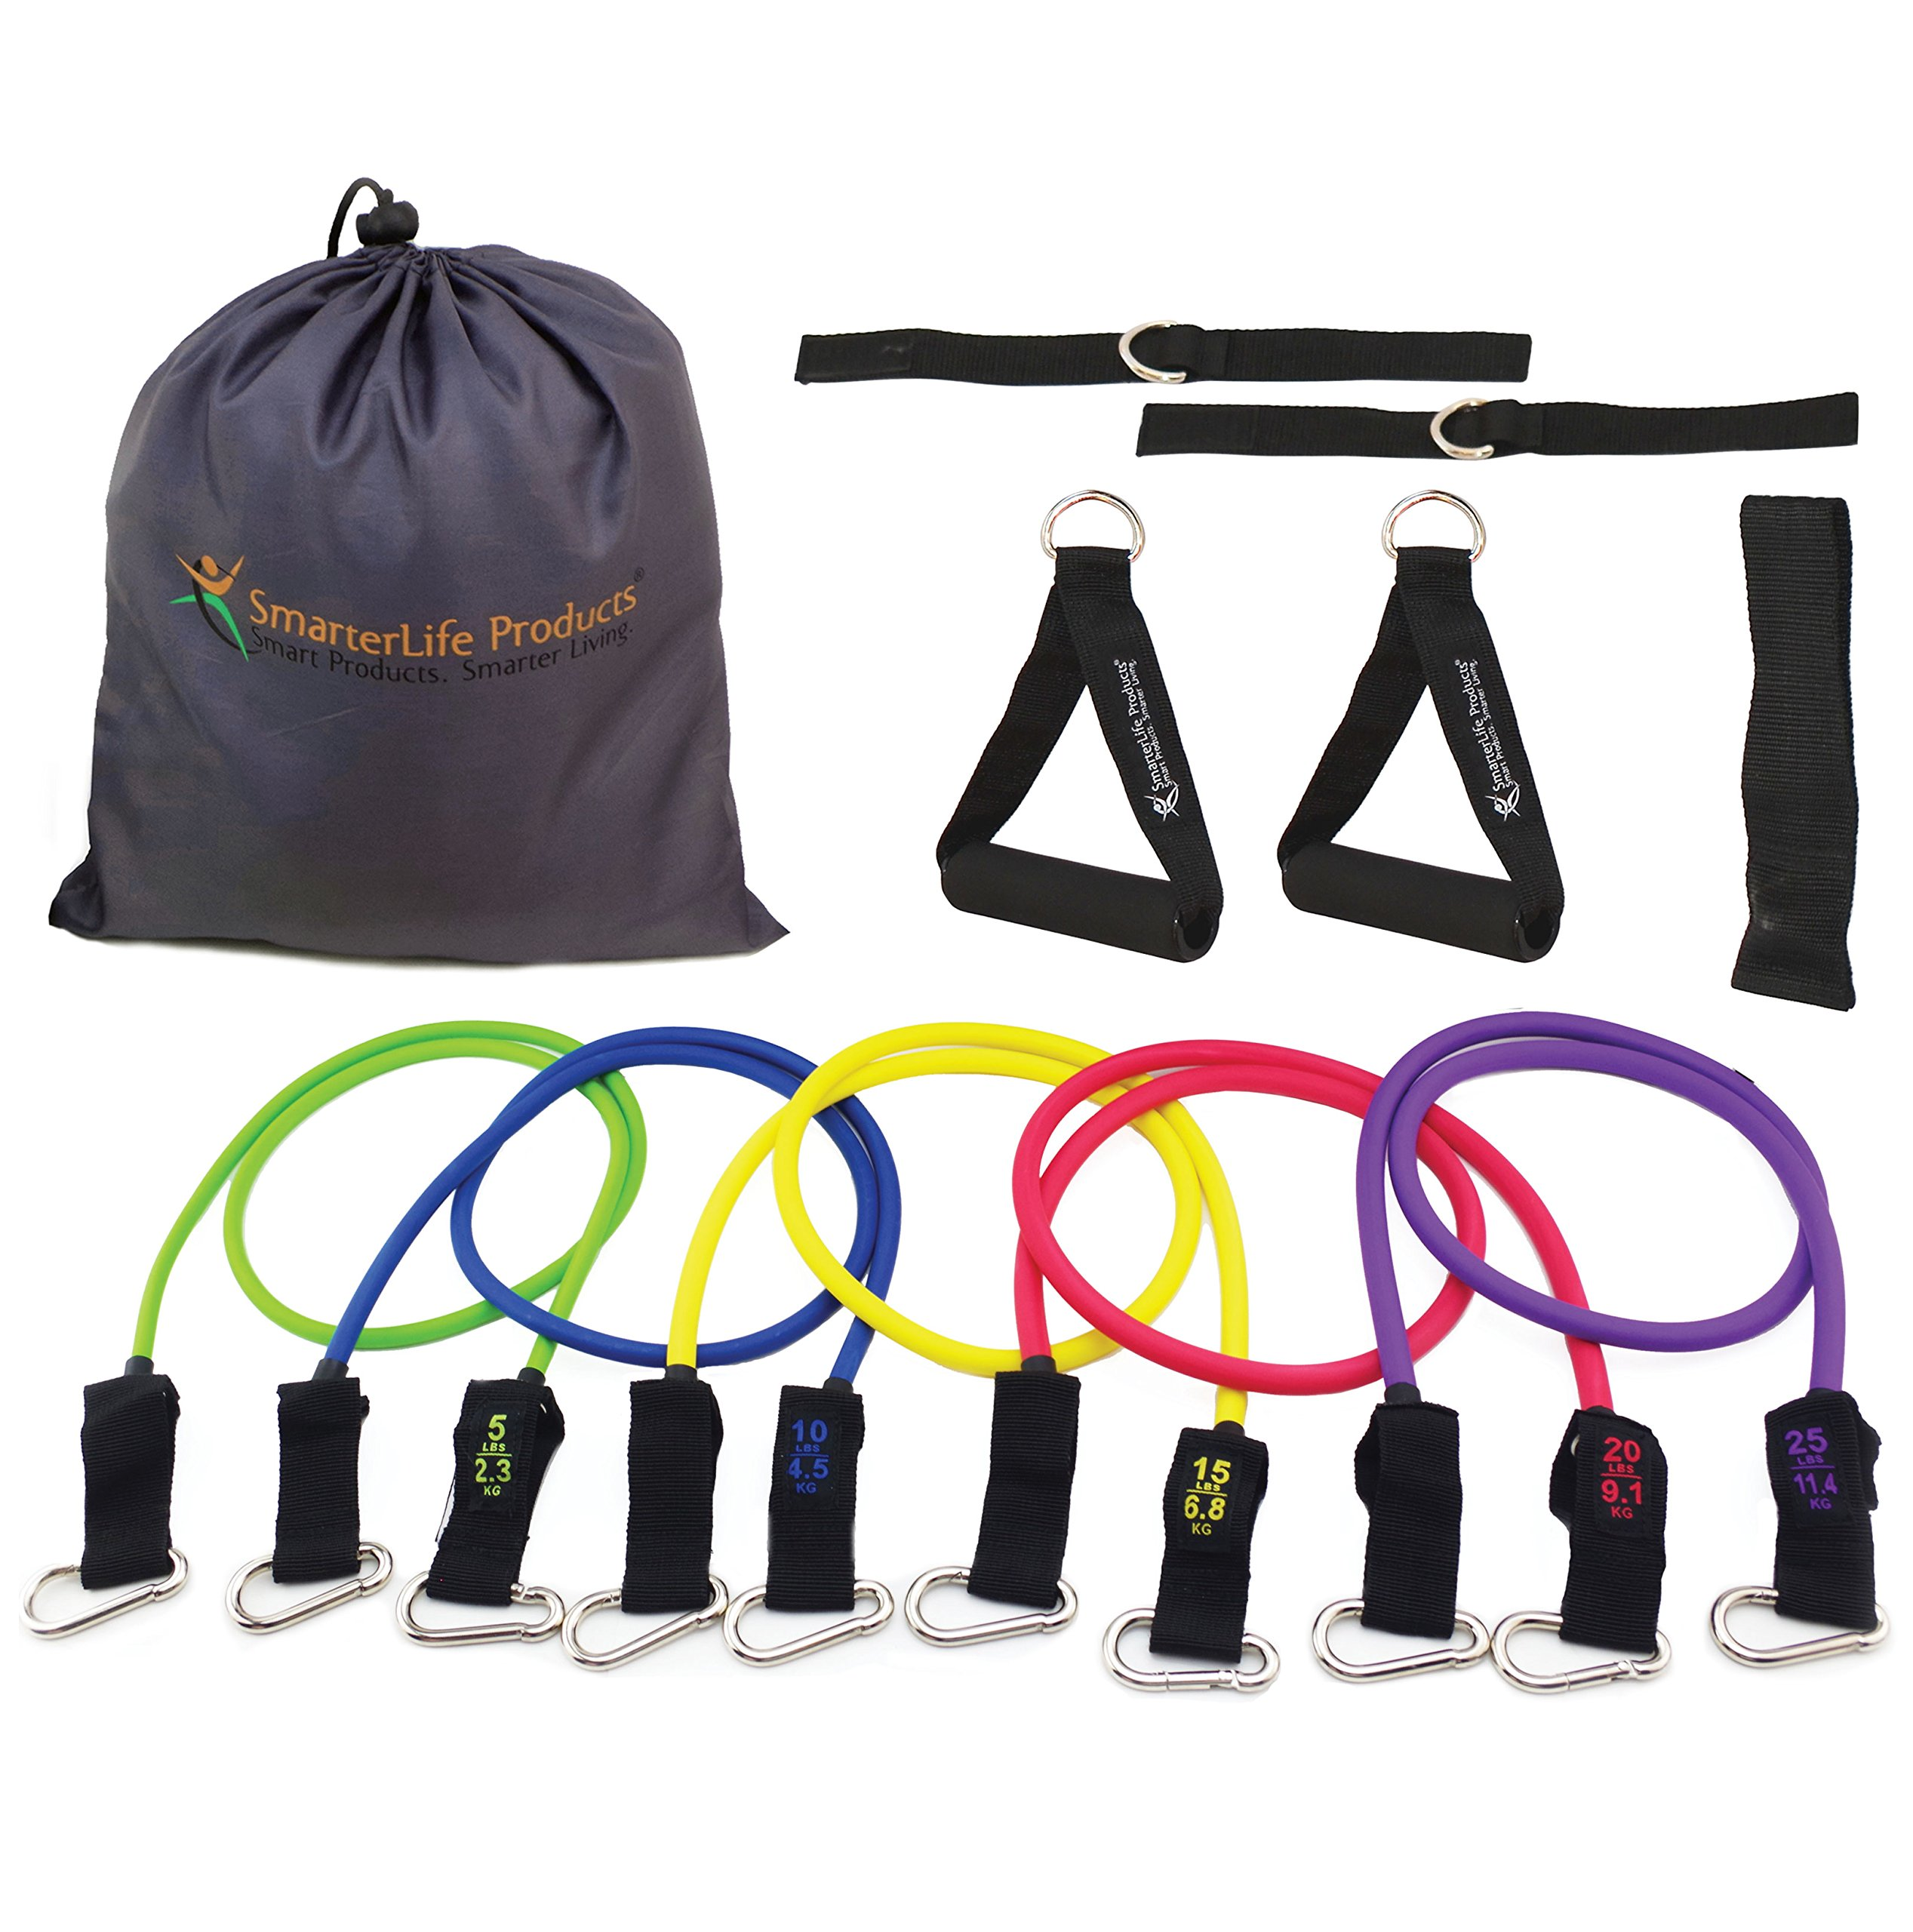 Resistance Bands Set for Legs and Butt - Portable Exercise Bands for Travel, Physical Therapy and Home Gym (5 Band Set with Padded Handles (2), Ankle Straps (2), Door Anchor, Travel Pouch) by SmarterLife Products